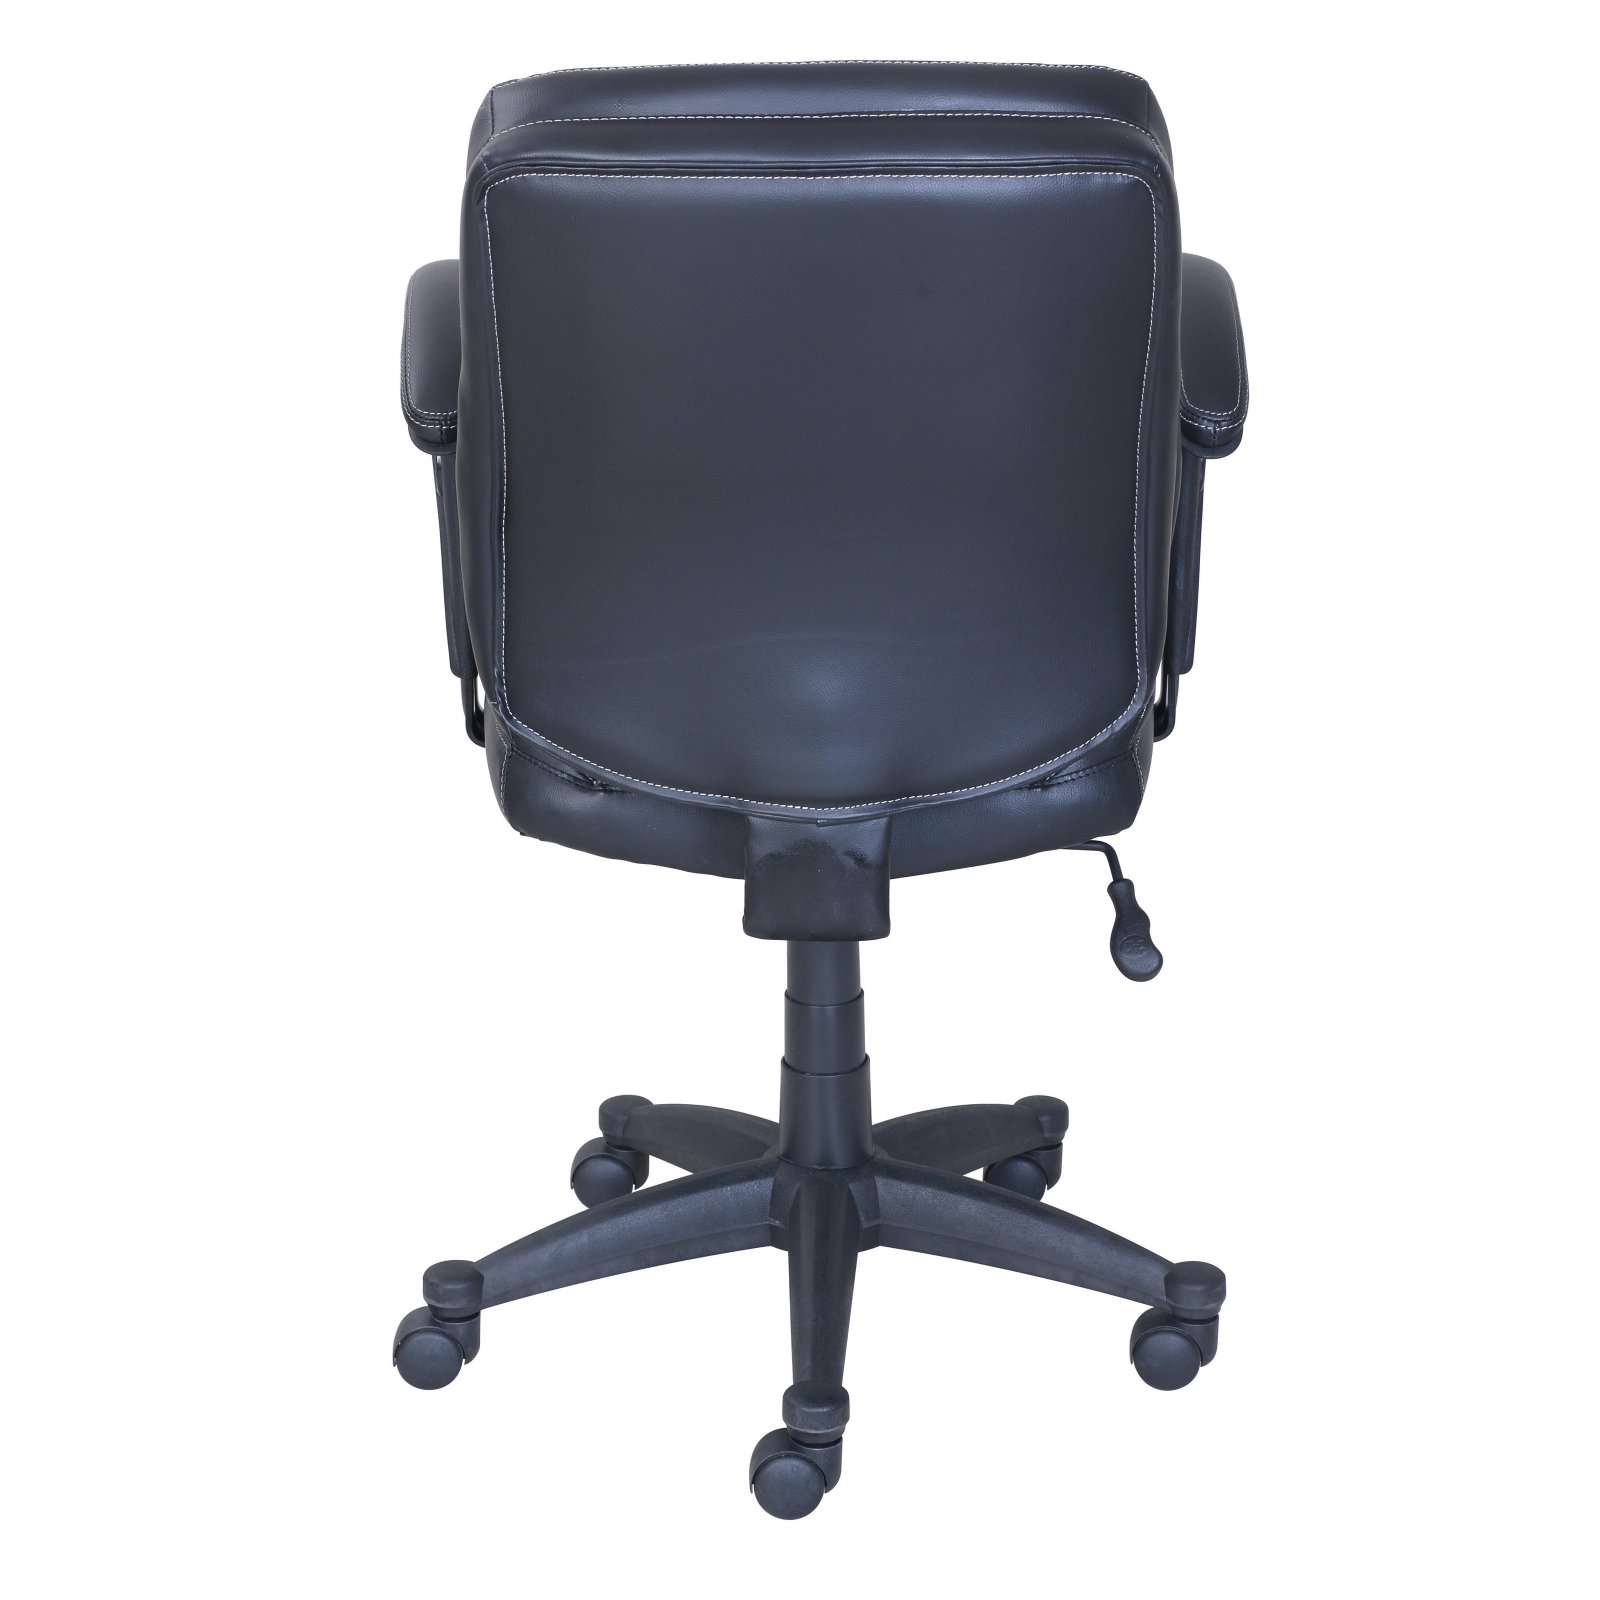 Serta Works Executive fice Chair with AIR Technology Walmart